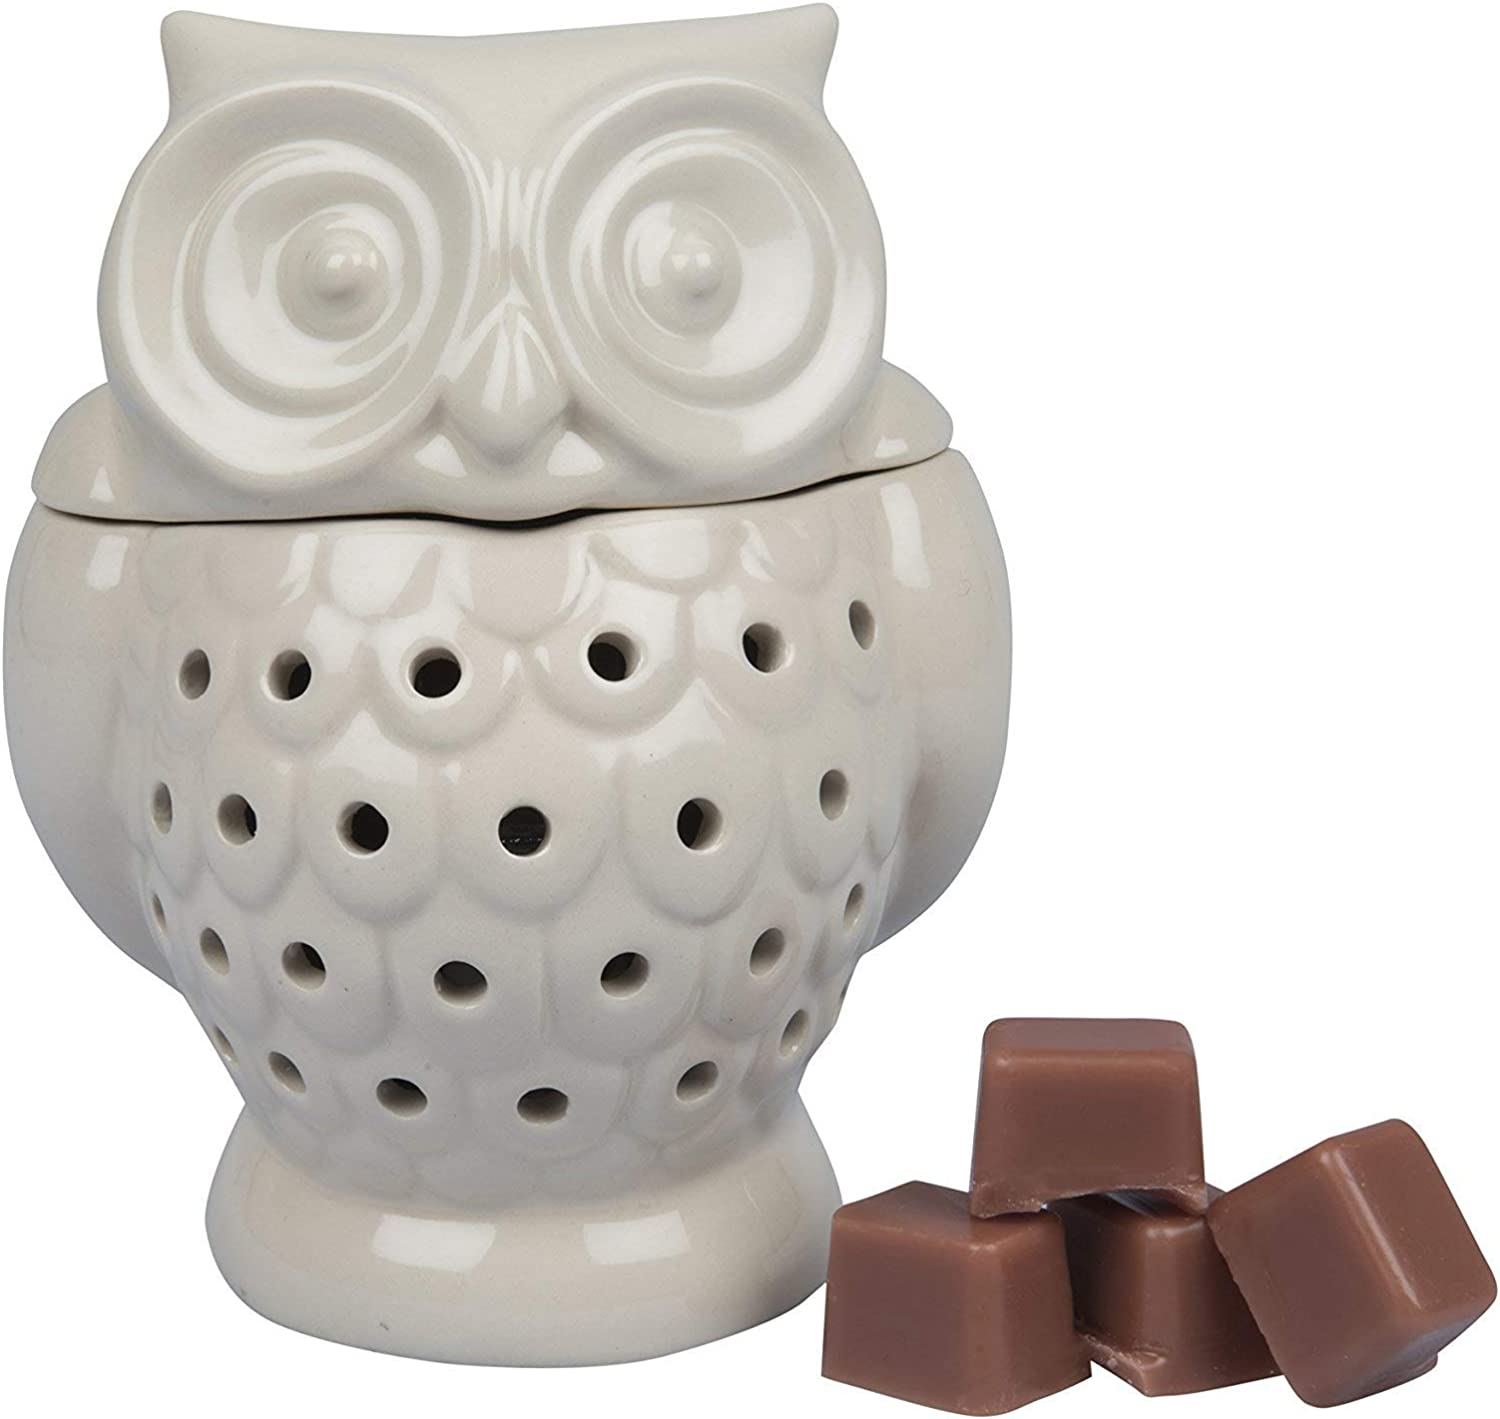 Deco Electric Owl Candle Warmer, Wax & Tart Warmer for Indoor Decor, Includes 4 Wax Cubes and Halogen Bulb(4.5